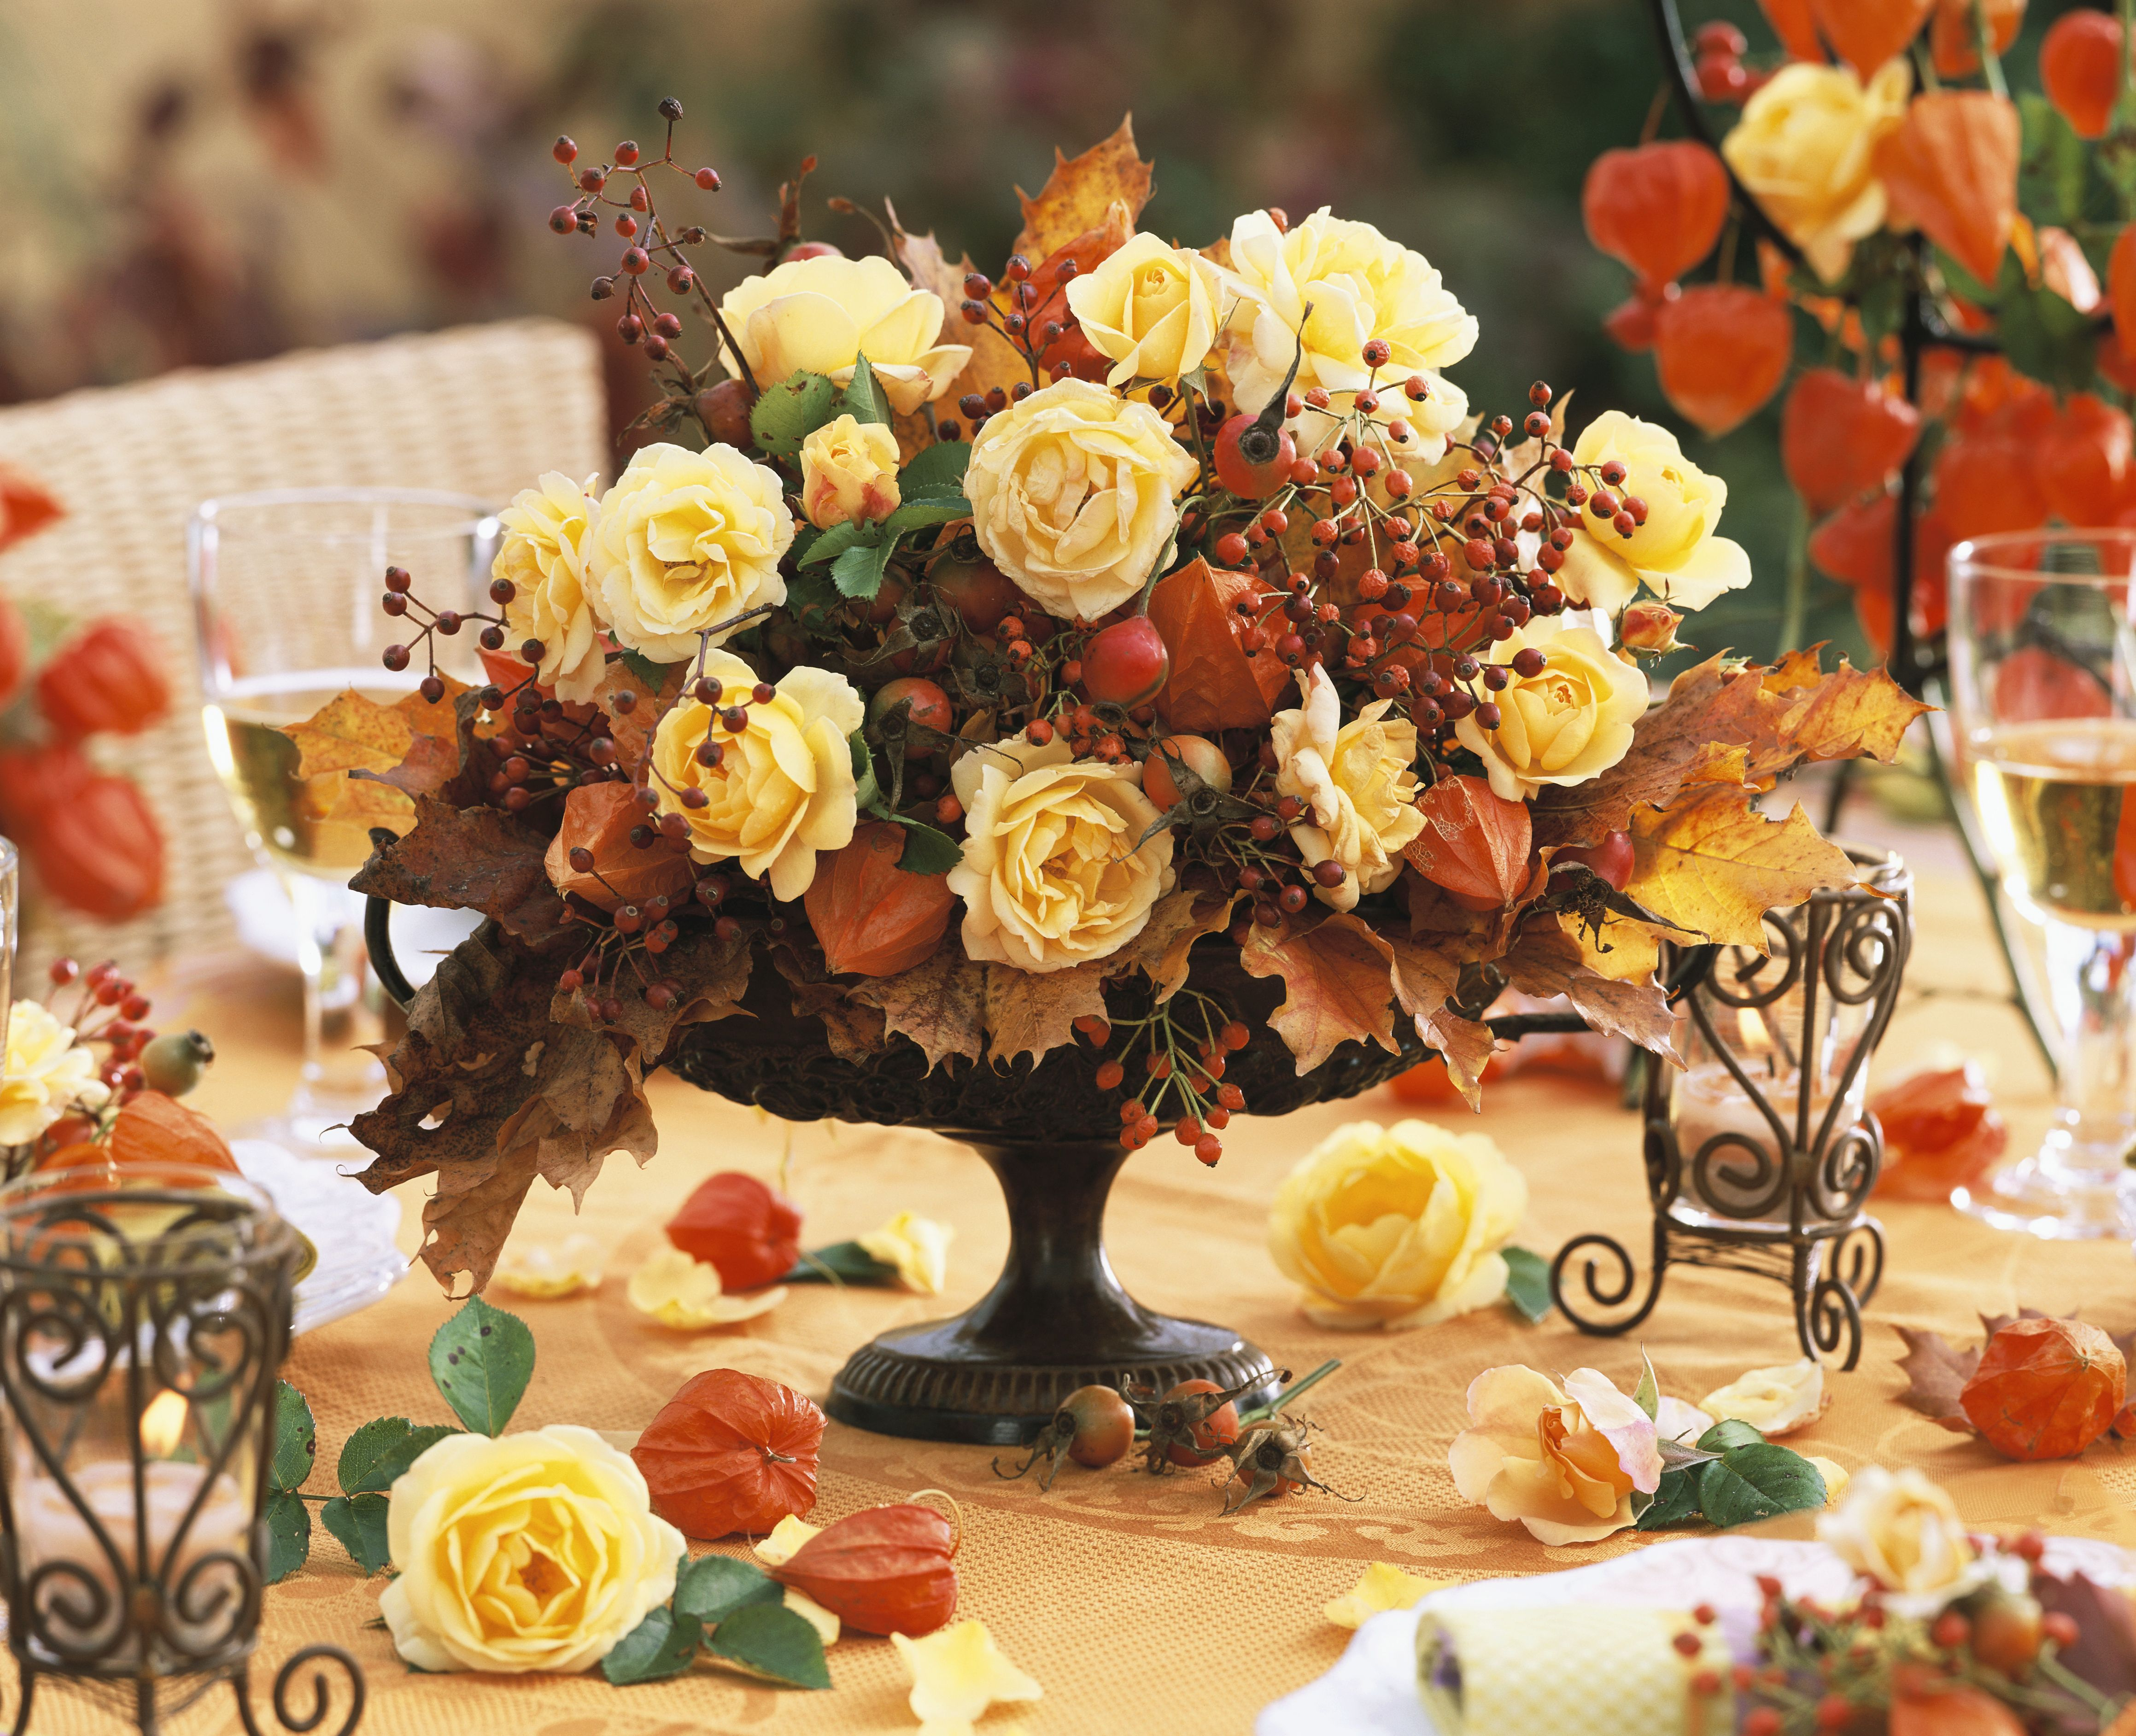 Yellow Roses and Rose Hips Autumn Arrangement